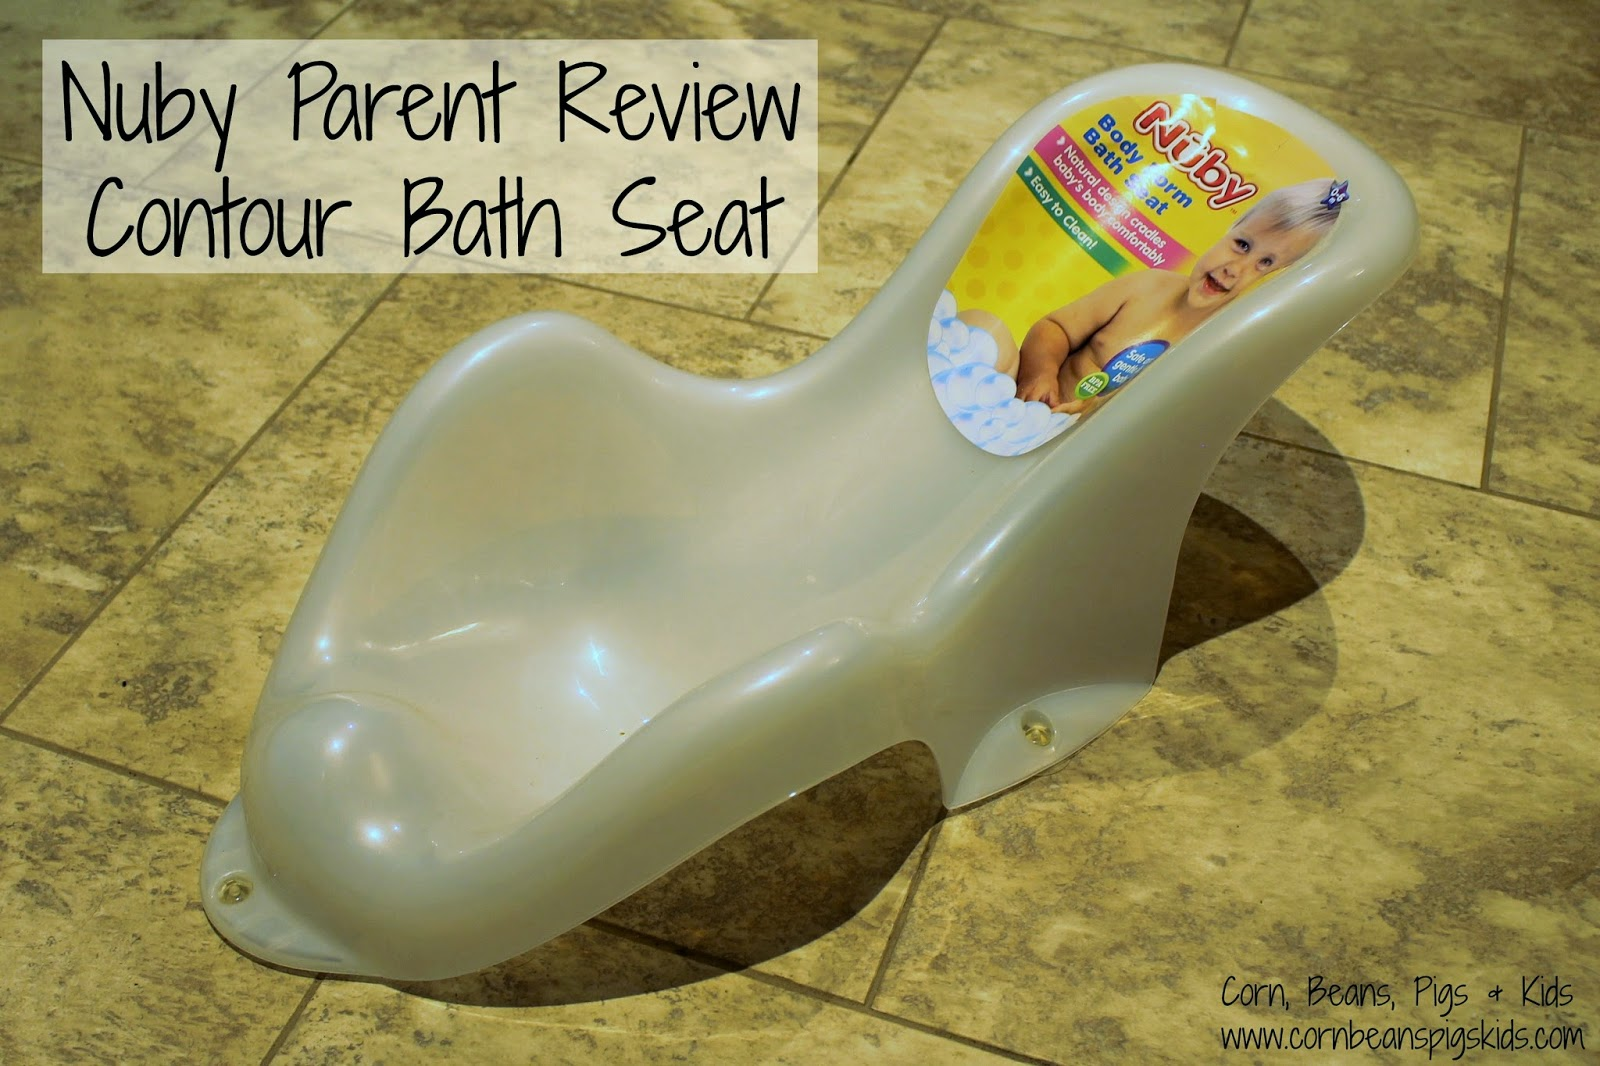 Nuby Parent Review - Contour Bath Seat